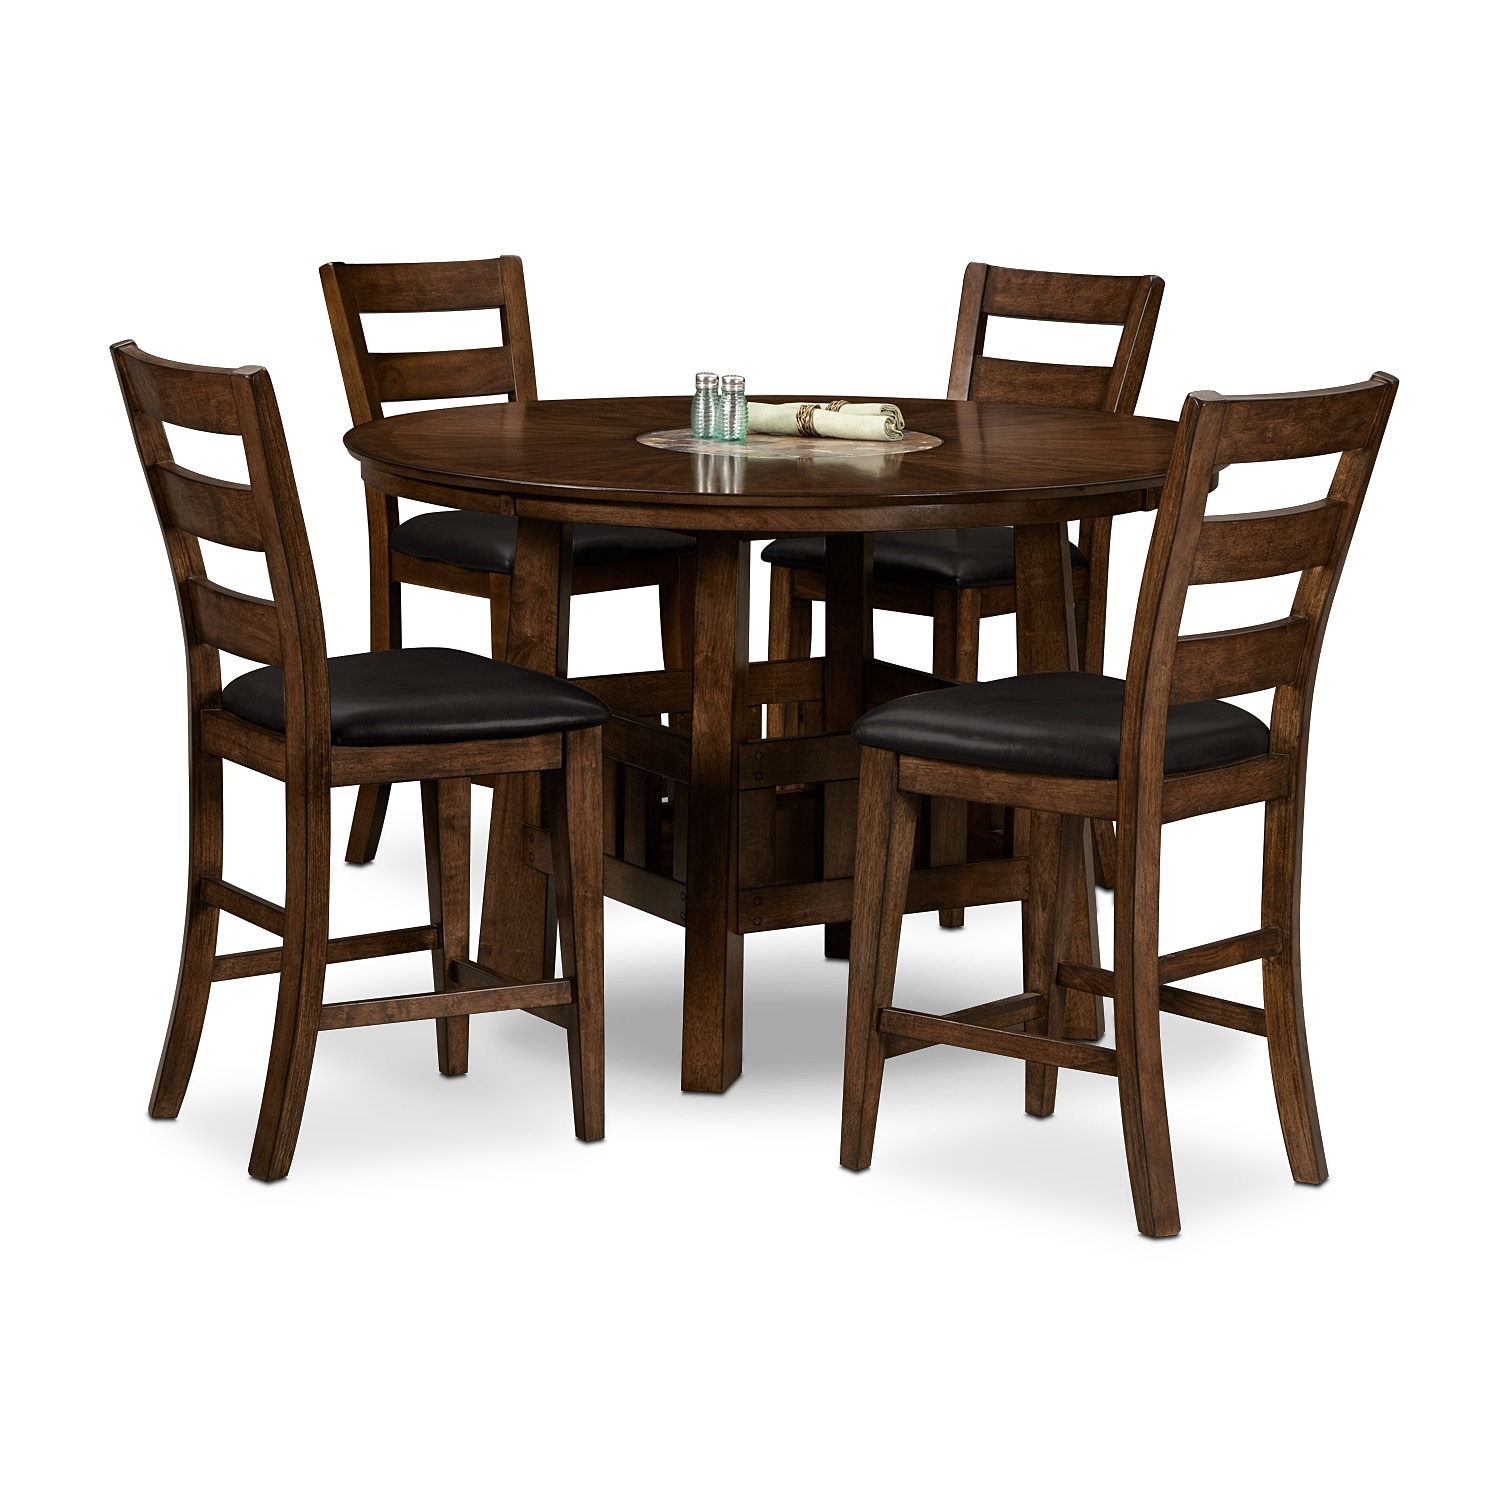 Dining Room Furniture - Harbor Pointe 5 Pc. Counter-Height Dinette